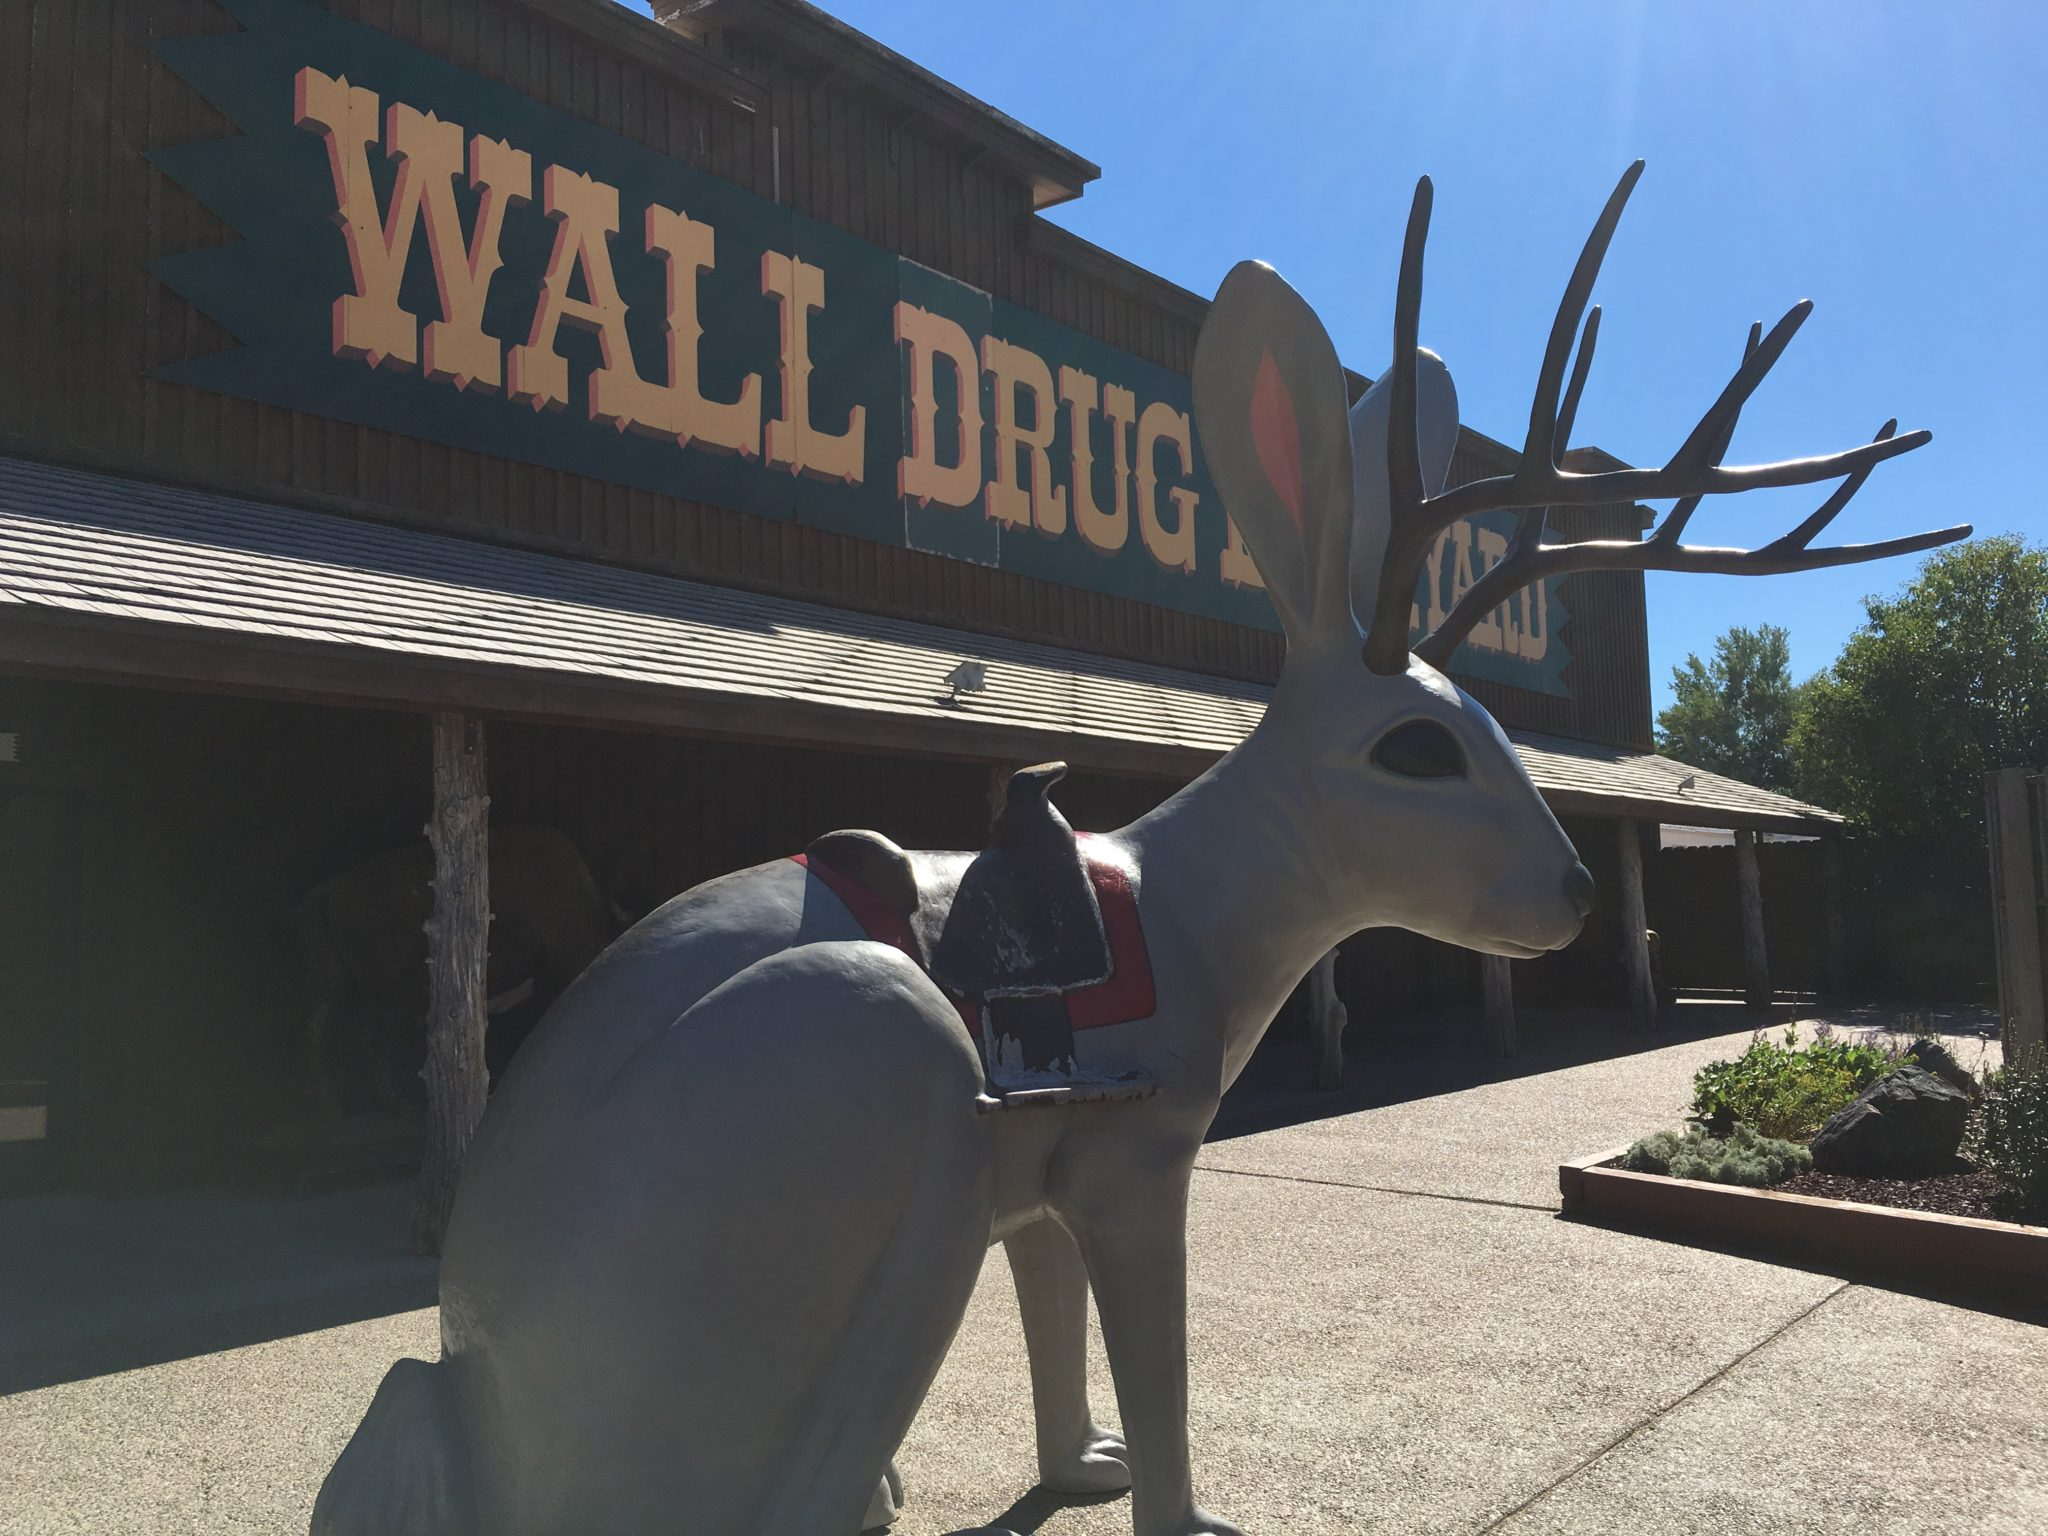 2016 Road Trip – Wall Drug